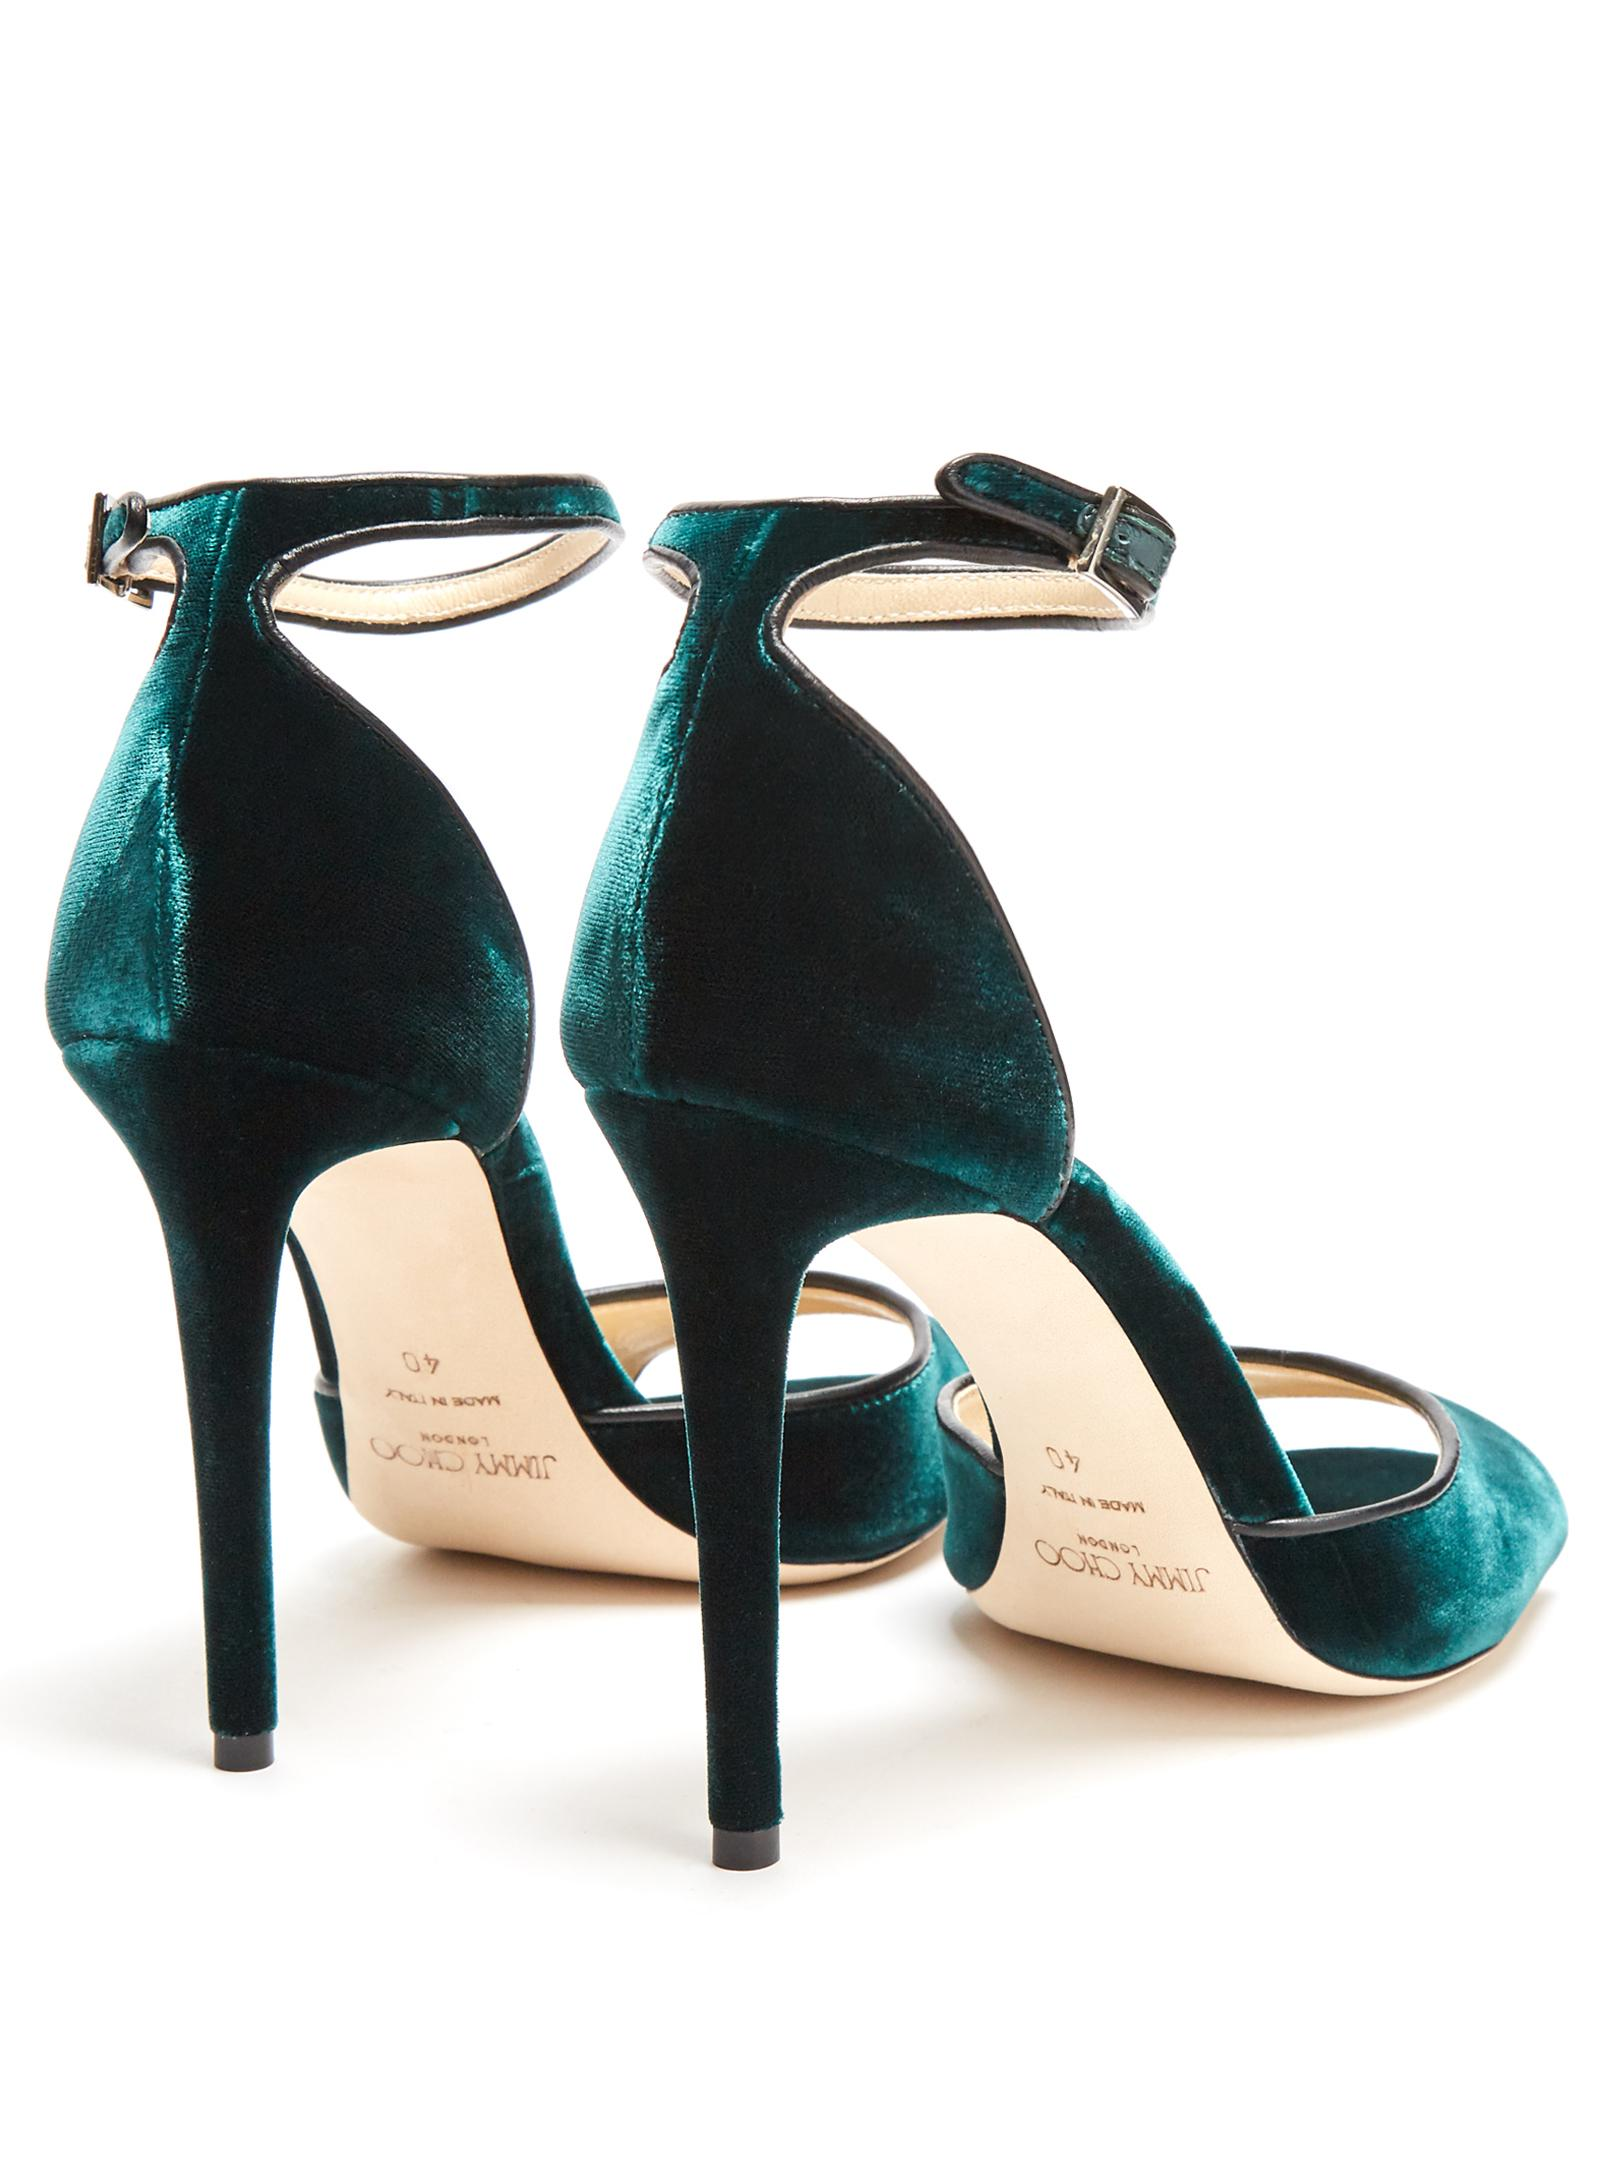 913fbaeb568 Lyst - Jimmy Choo Annie 100mm Crushed-velvet Sandals in Green